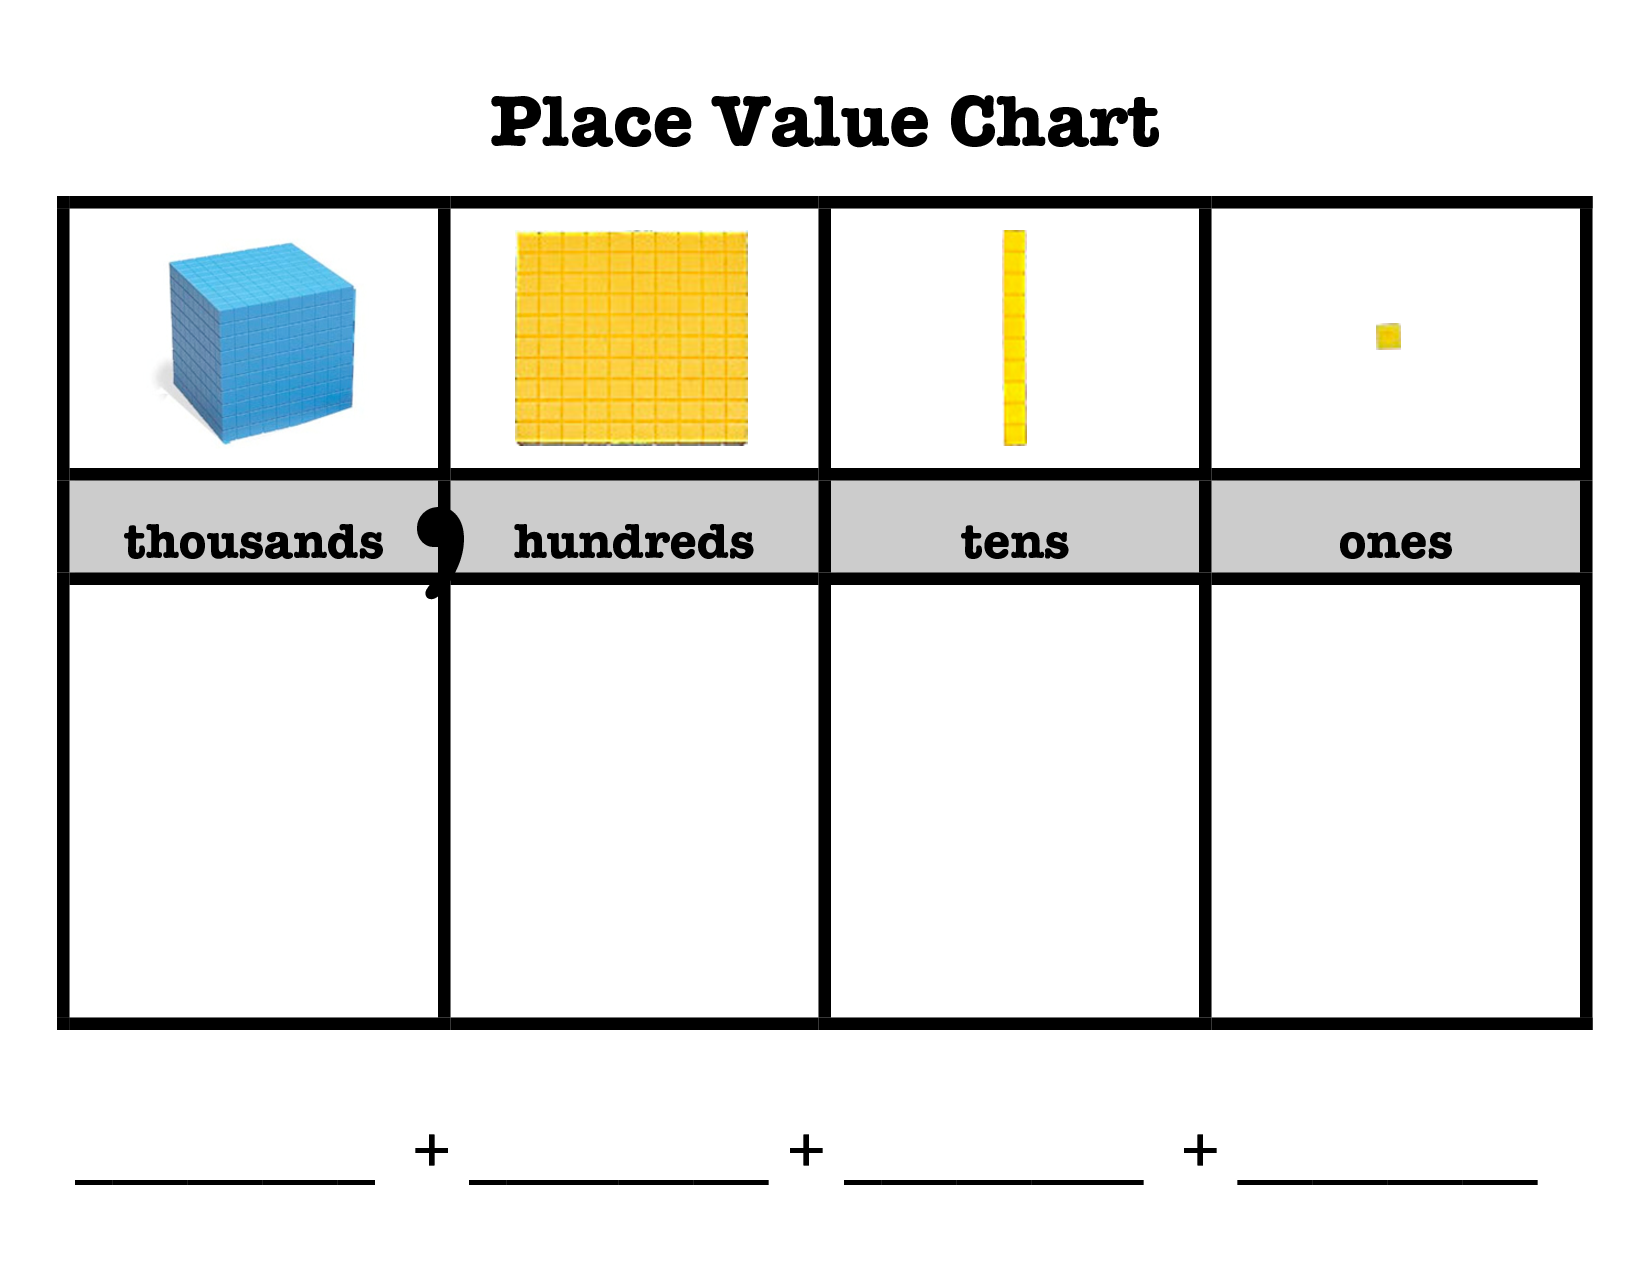 Thousands place value chart first time teacher pinterest inspiring printable place value chart template images place value chart thousands place value chart decimal place value chart place value chart with nvjuhfo Choice Image